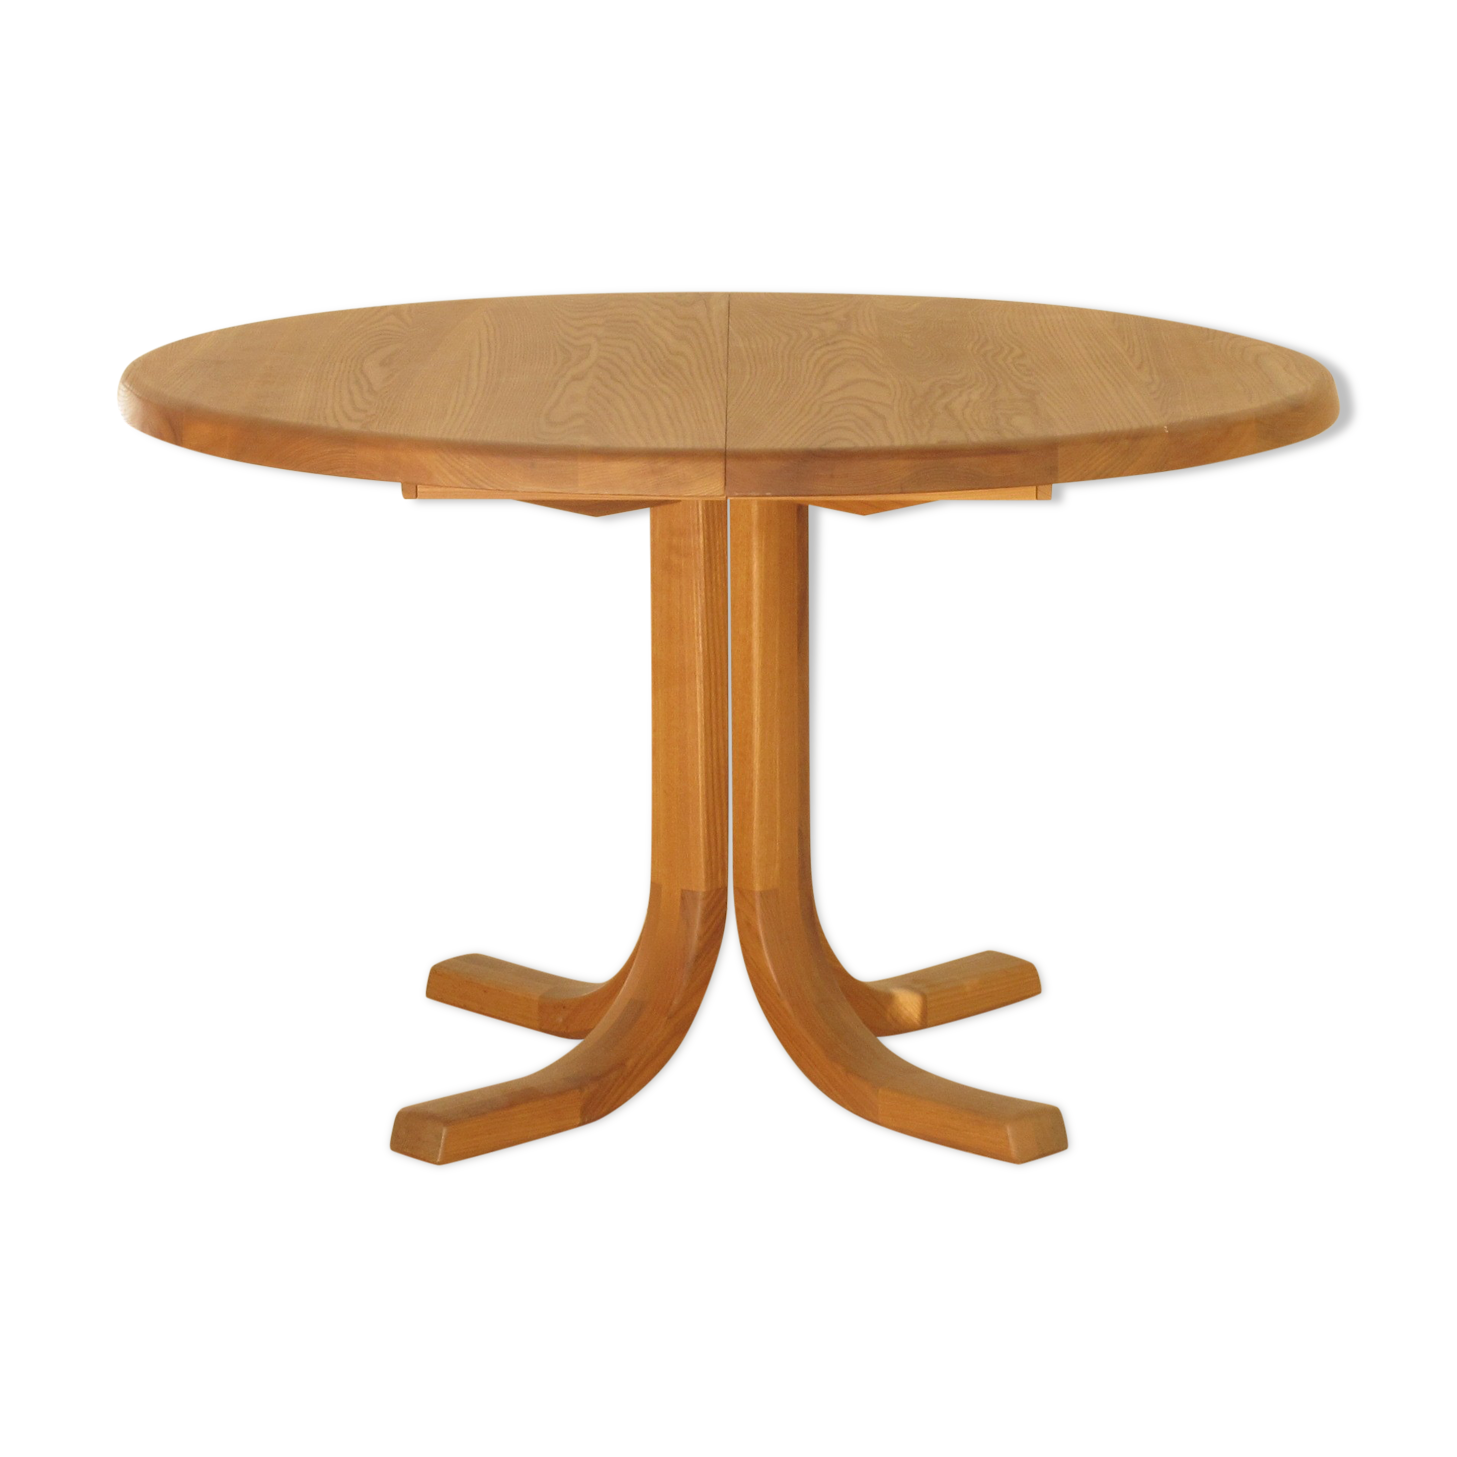 Table T40 orme massif Pierre Chapo